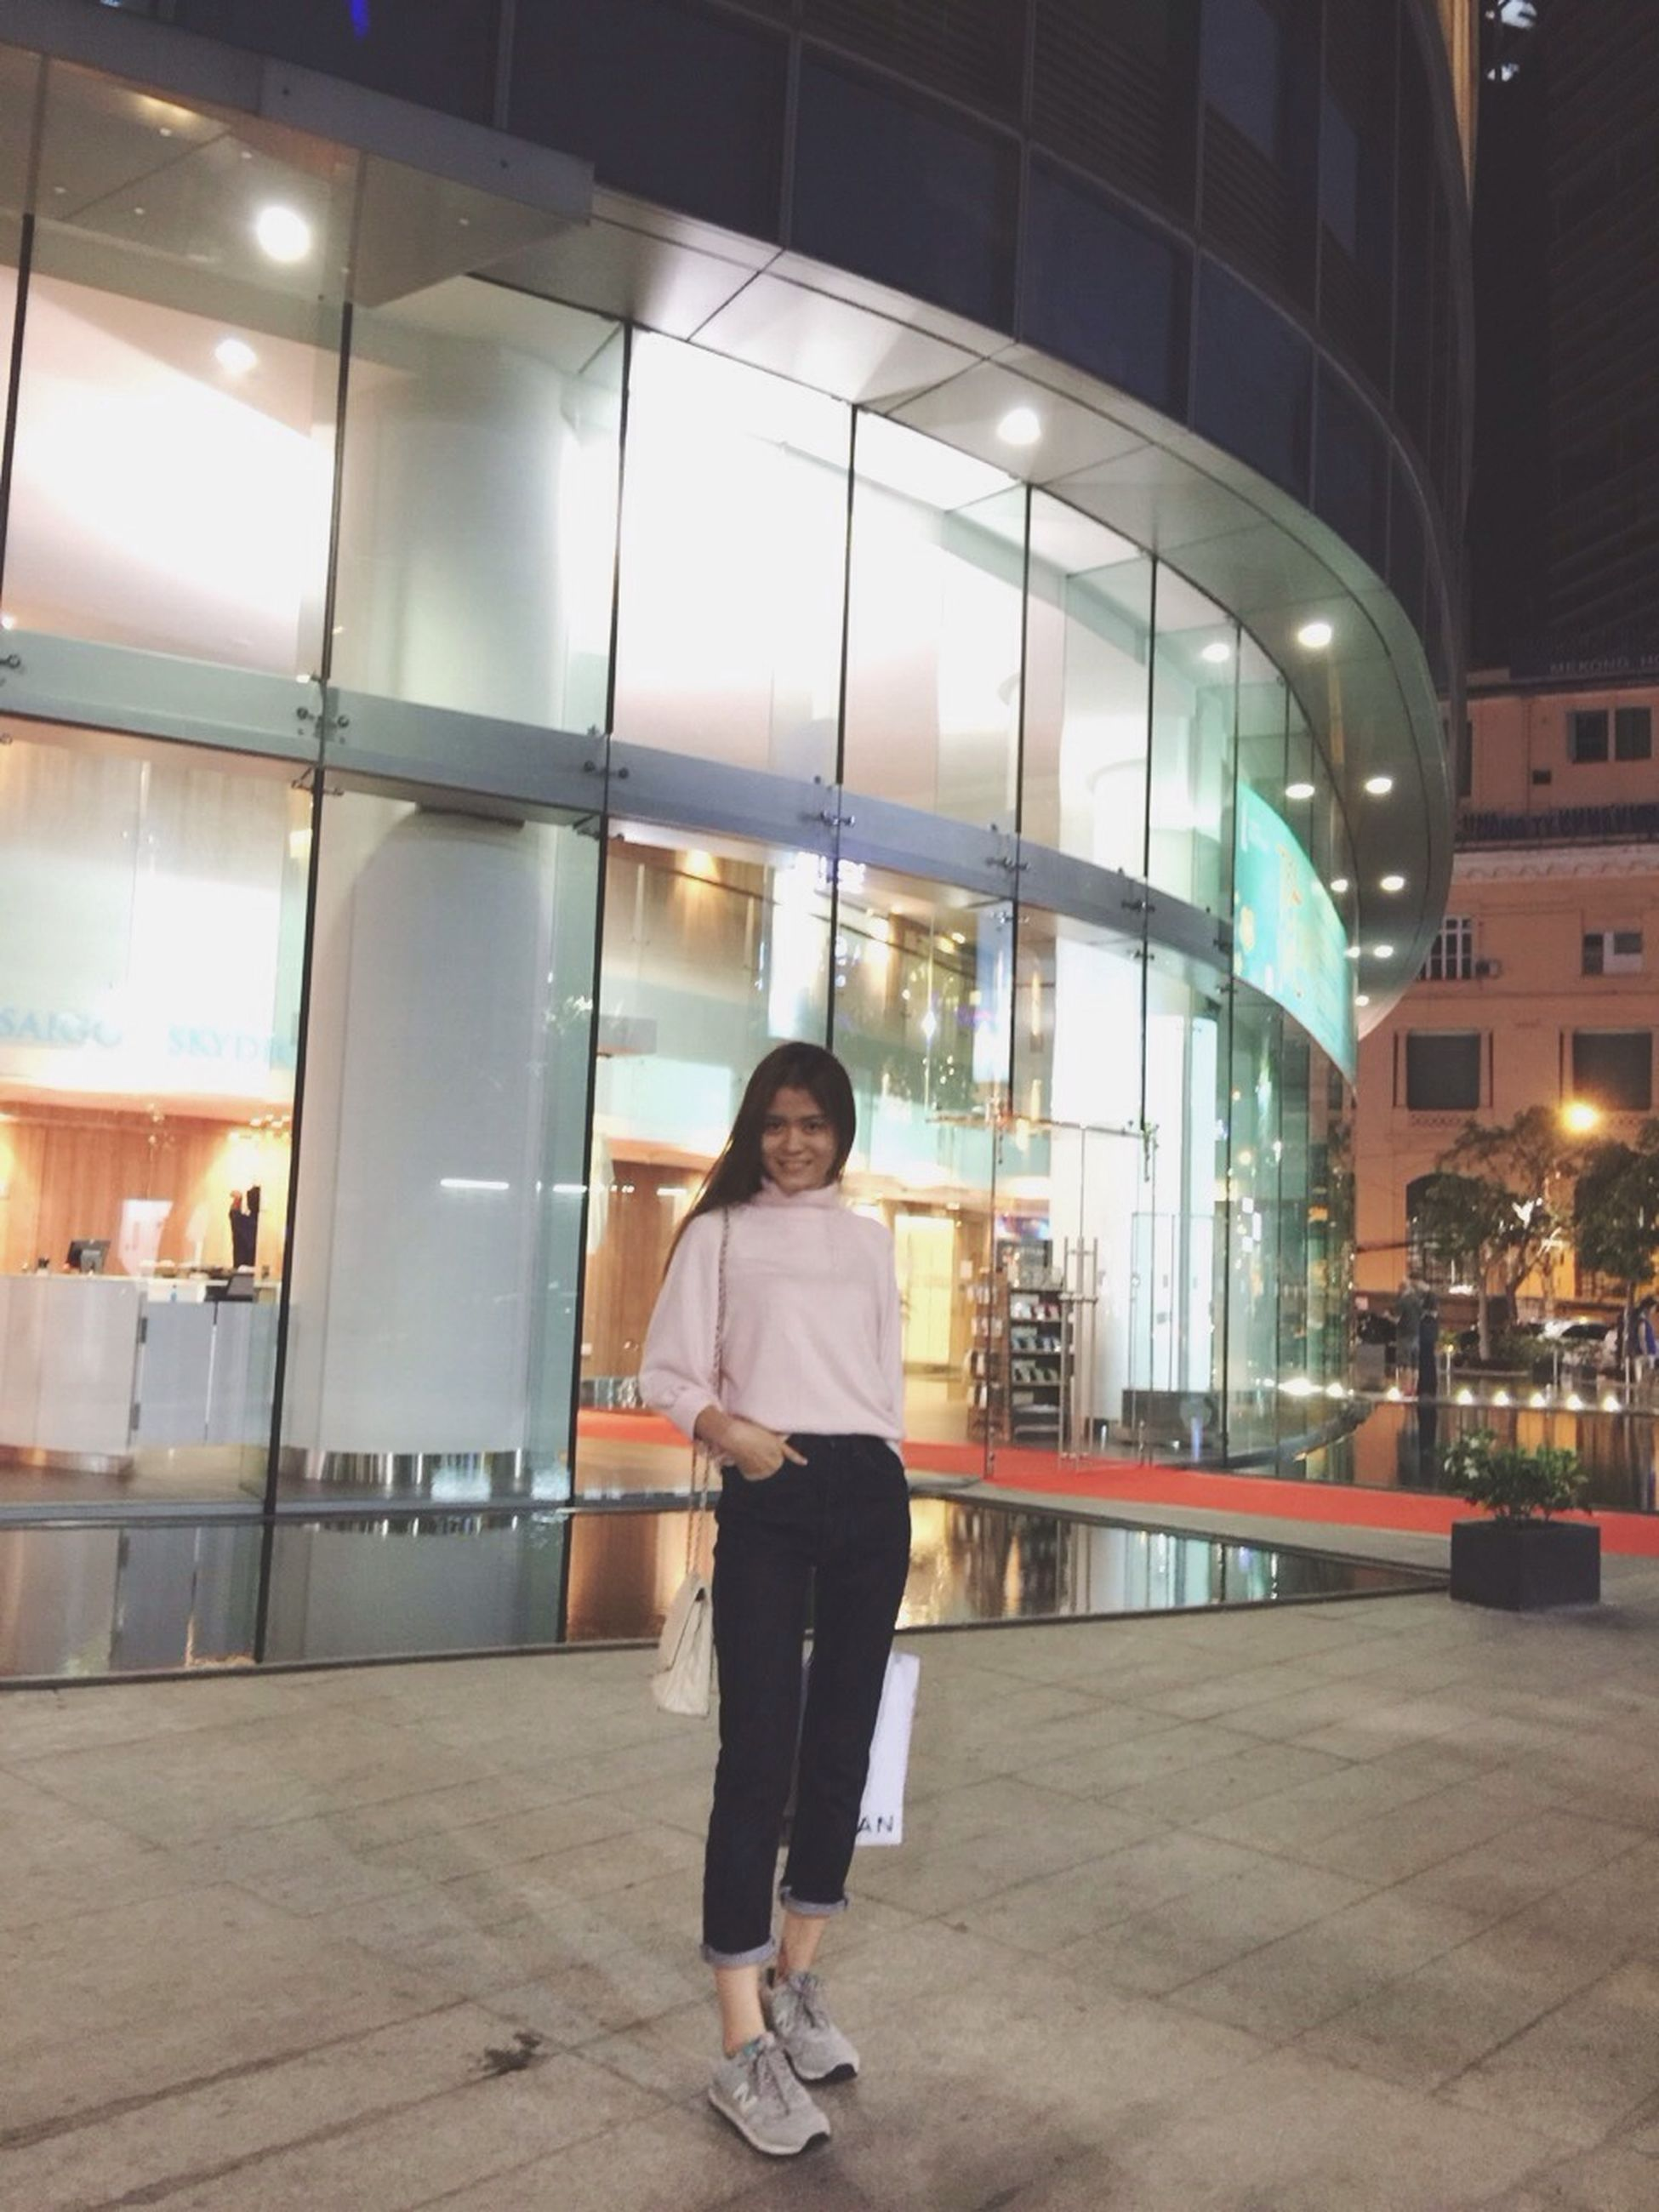 full length, architecture, lifestyles, built structure, casual clothing, standing, illuminated, building exterior, leisure activity, indoors, walking, city, rear view, night, reflection, city life, person, building